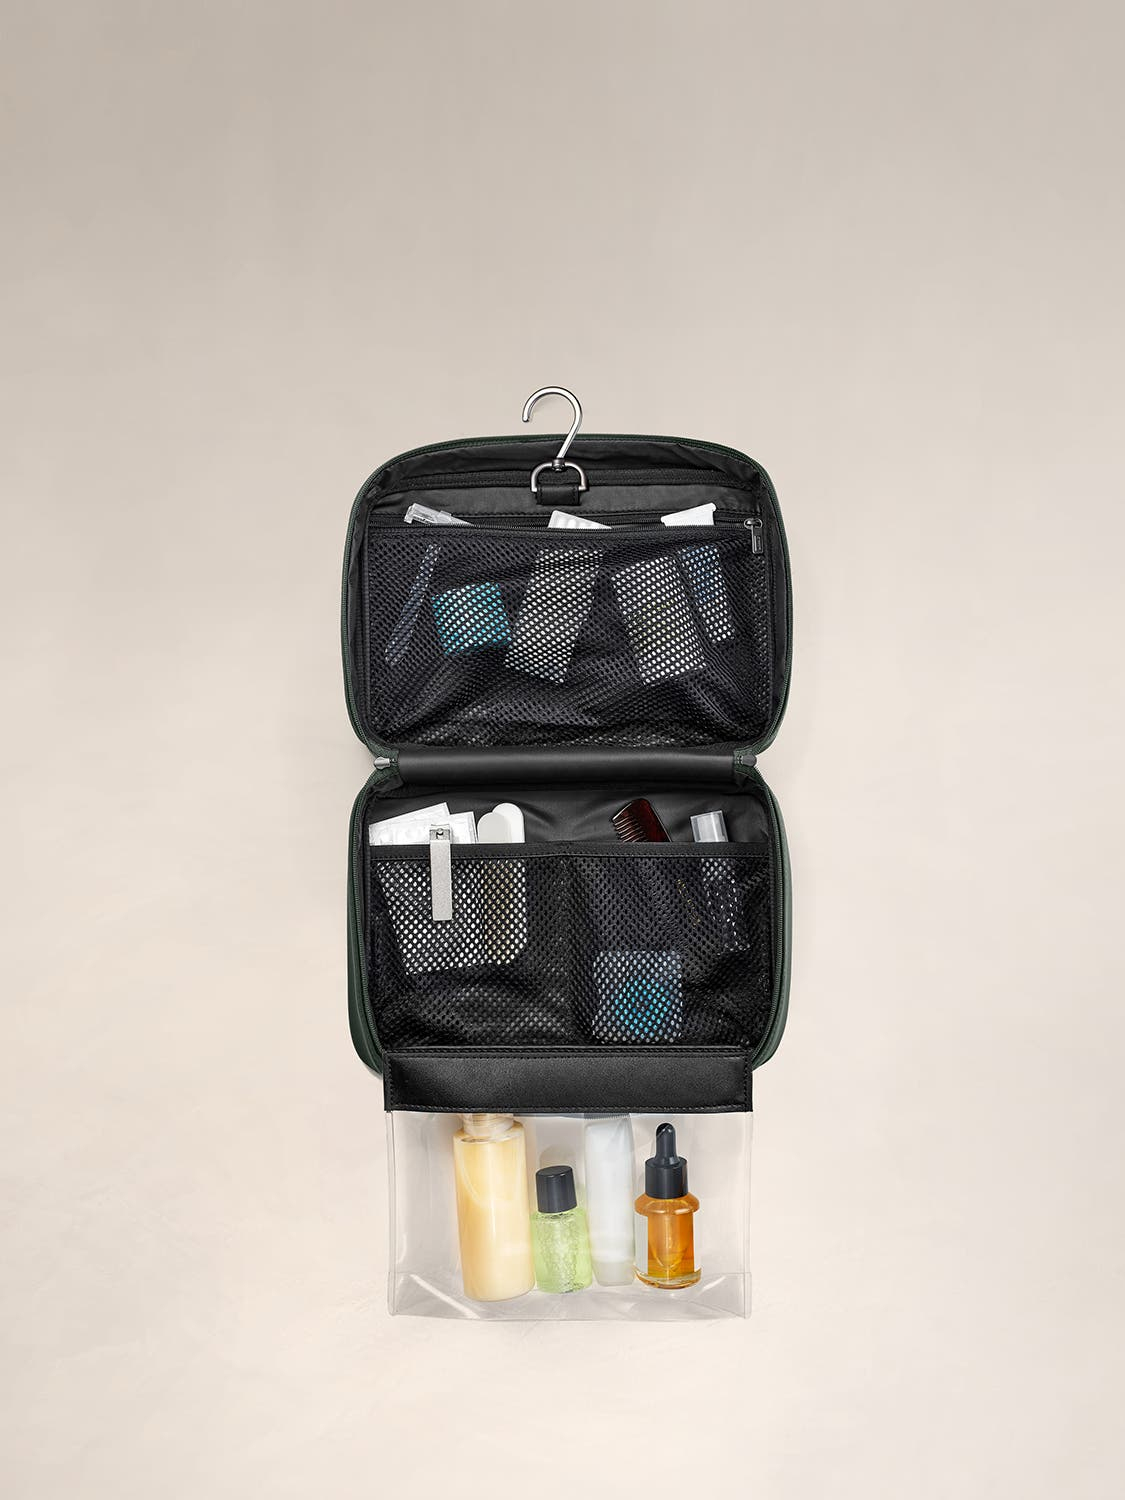 An internal view of a green toiletry bag packed with travel accessories within mesh pockets.